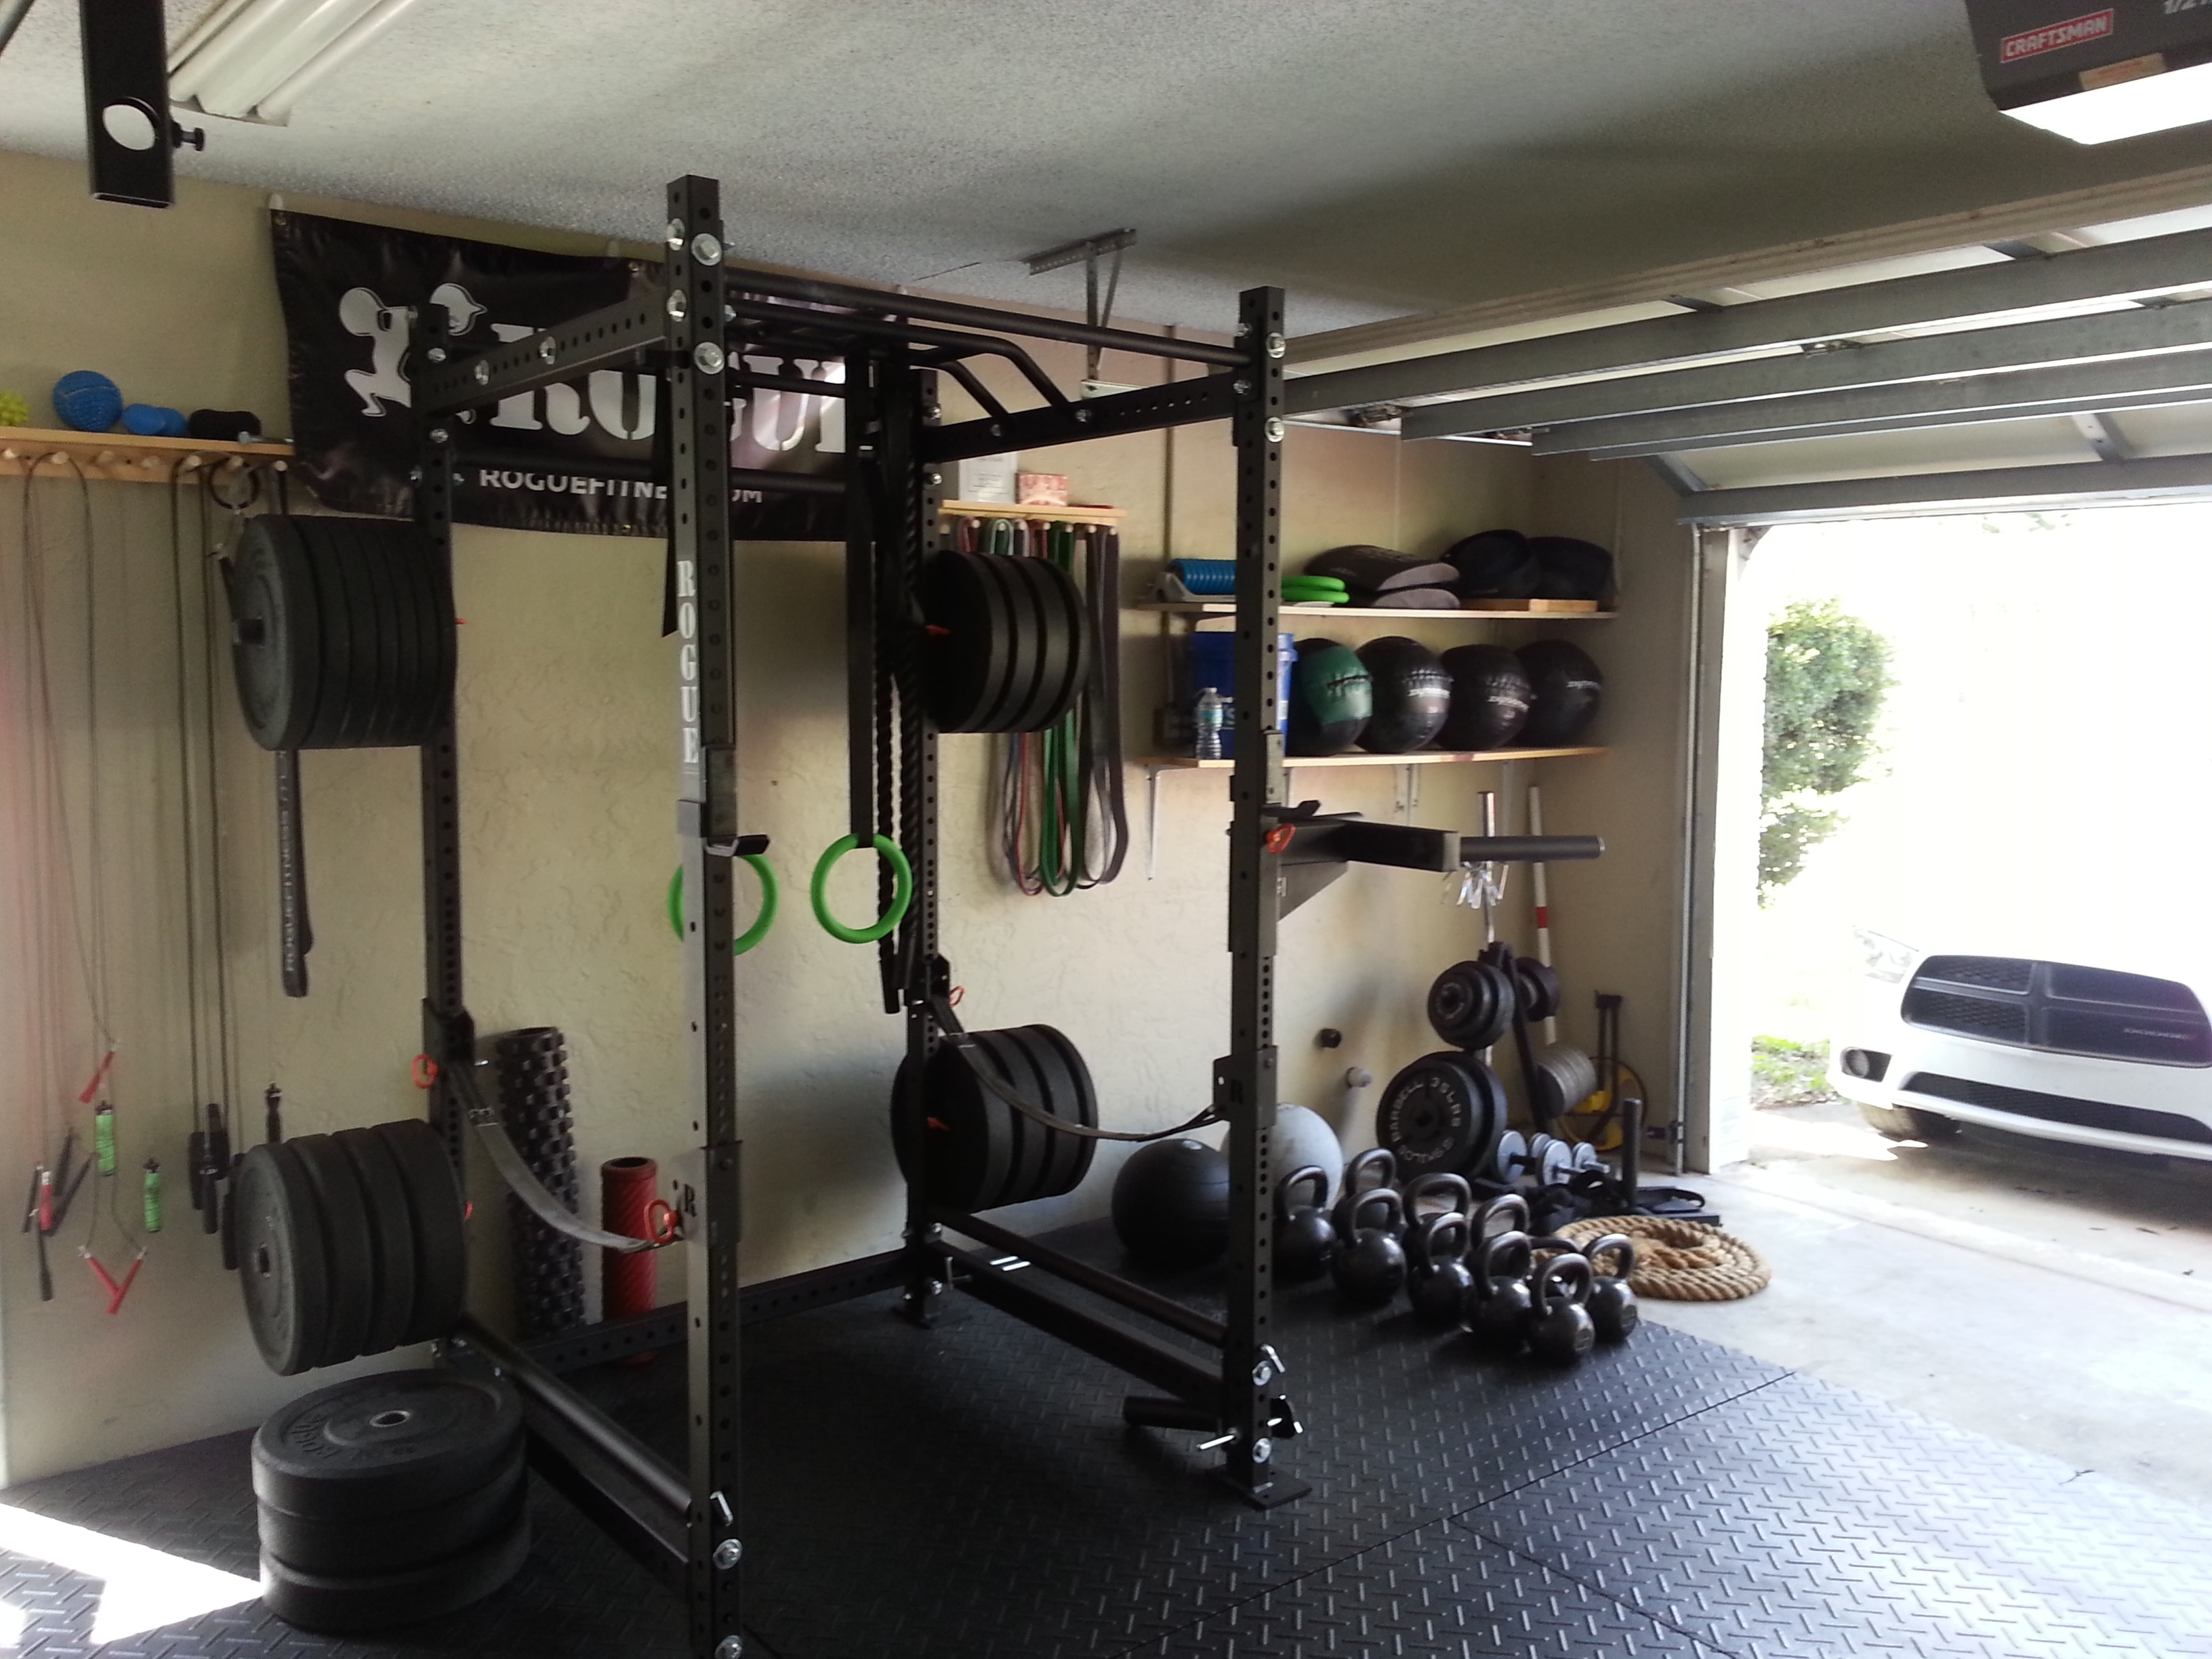 Garage conversion to gym ideas rickyhil outdoor ideas very